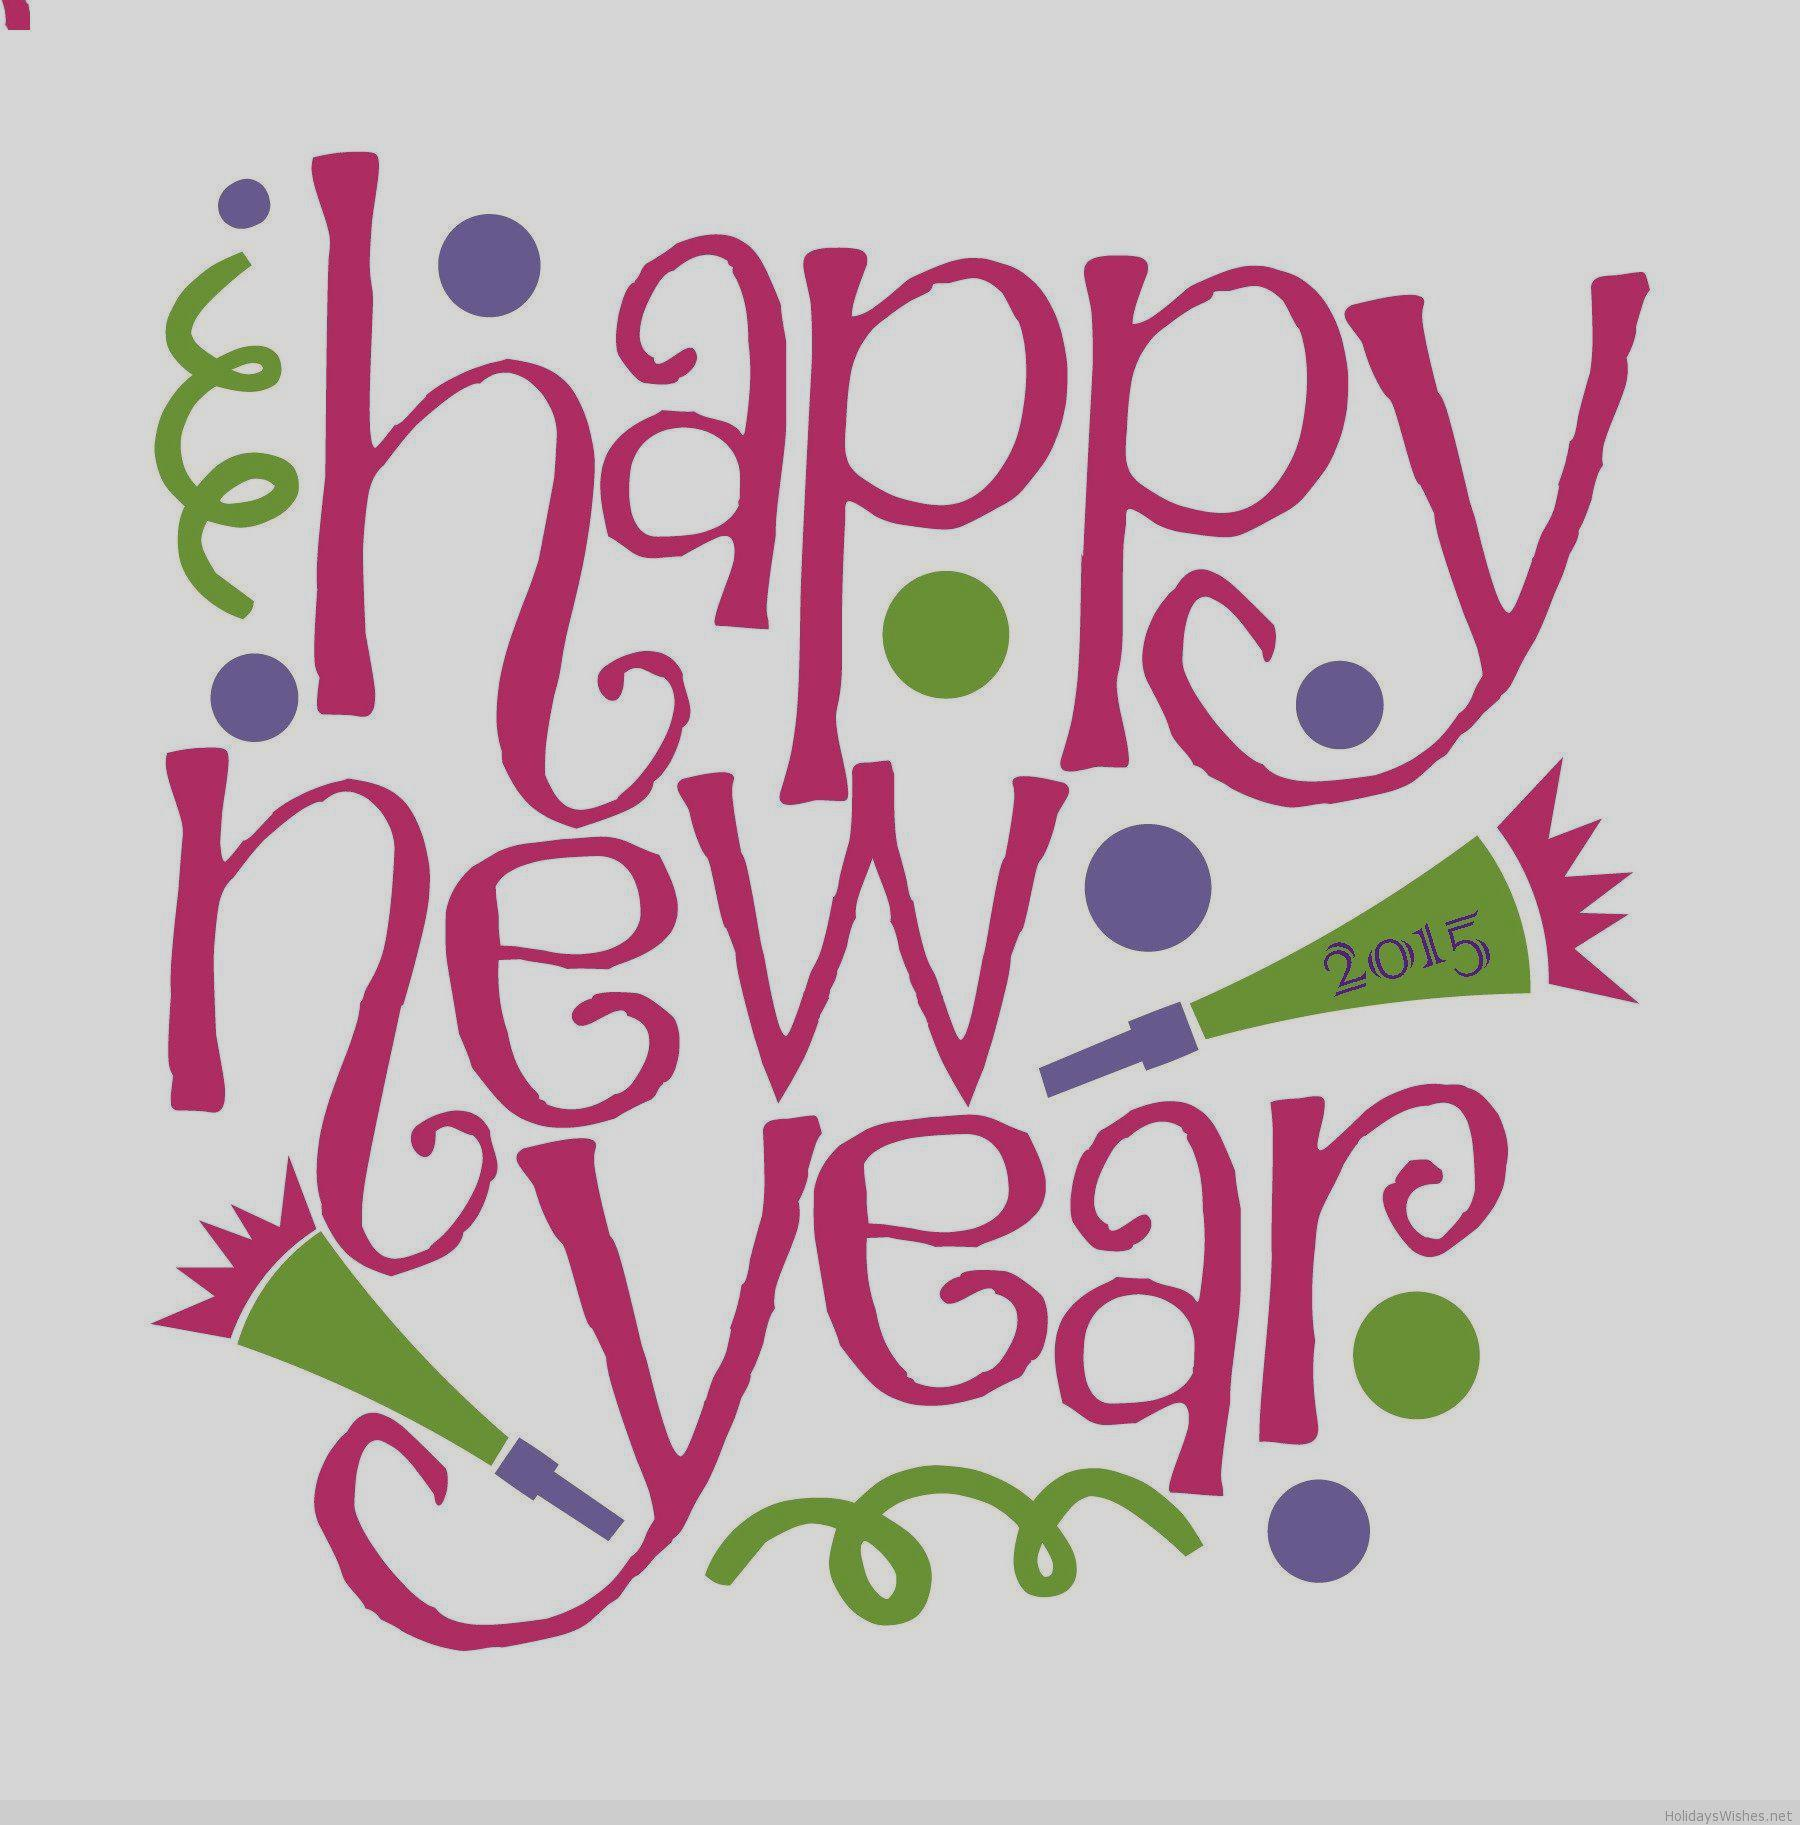 New year free happy. 2016 clipart banner